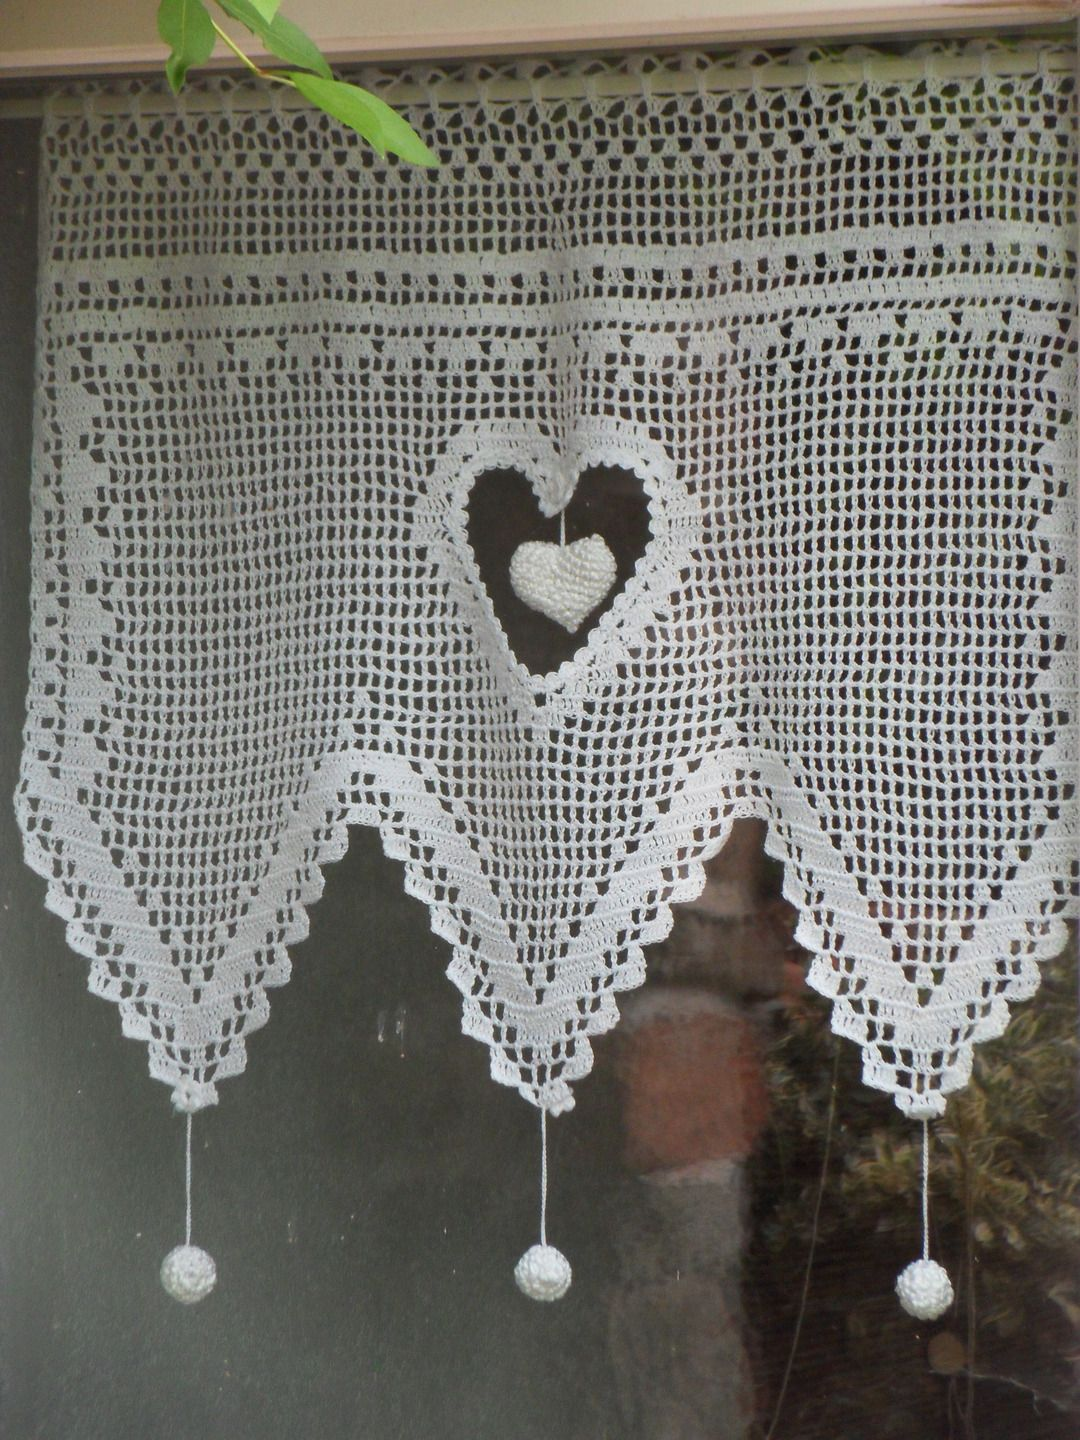 rideau dentelle gros coeur au crochet fait main crochet pinterest gros coeur fait main et. Black Bedroom Furniture Sets. Home Design Ideas